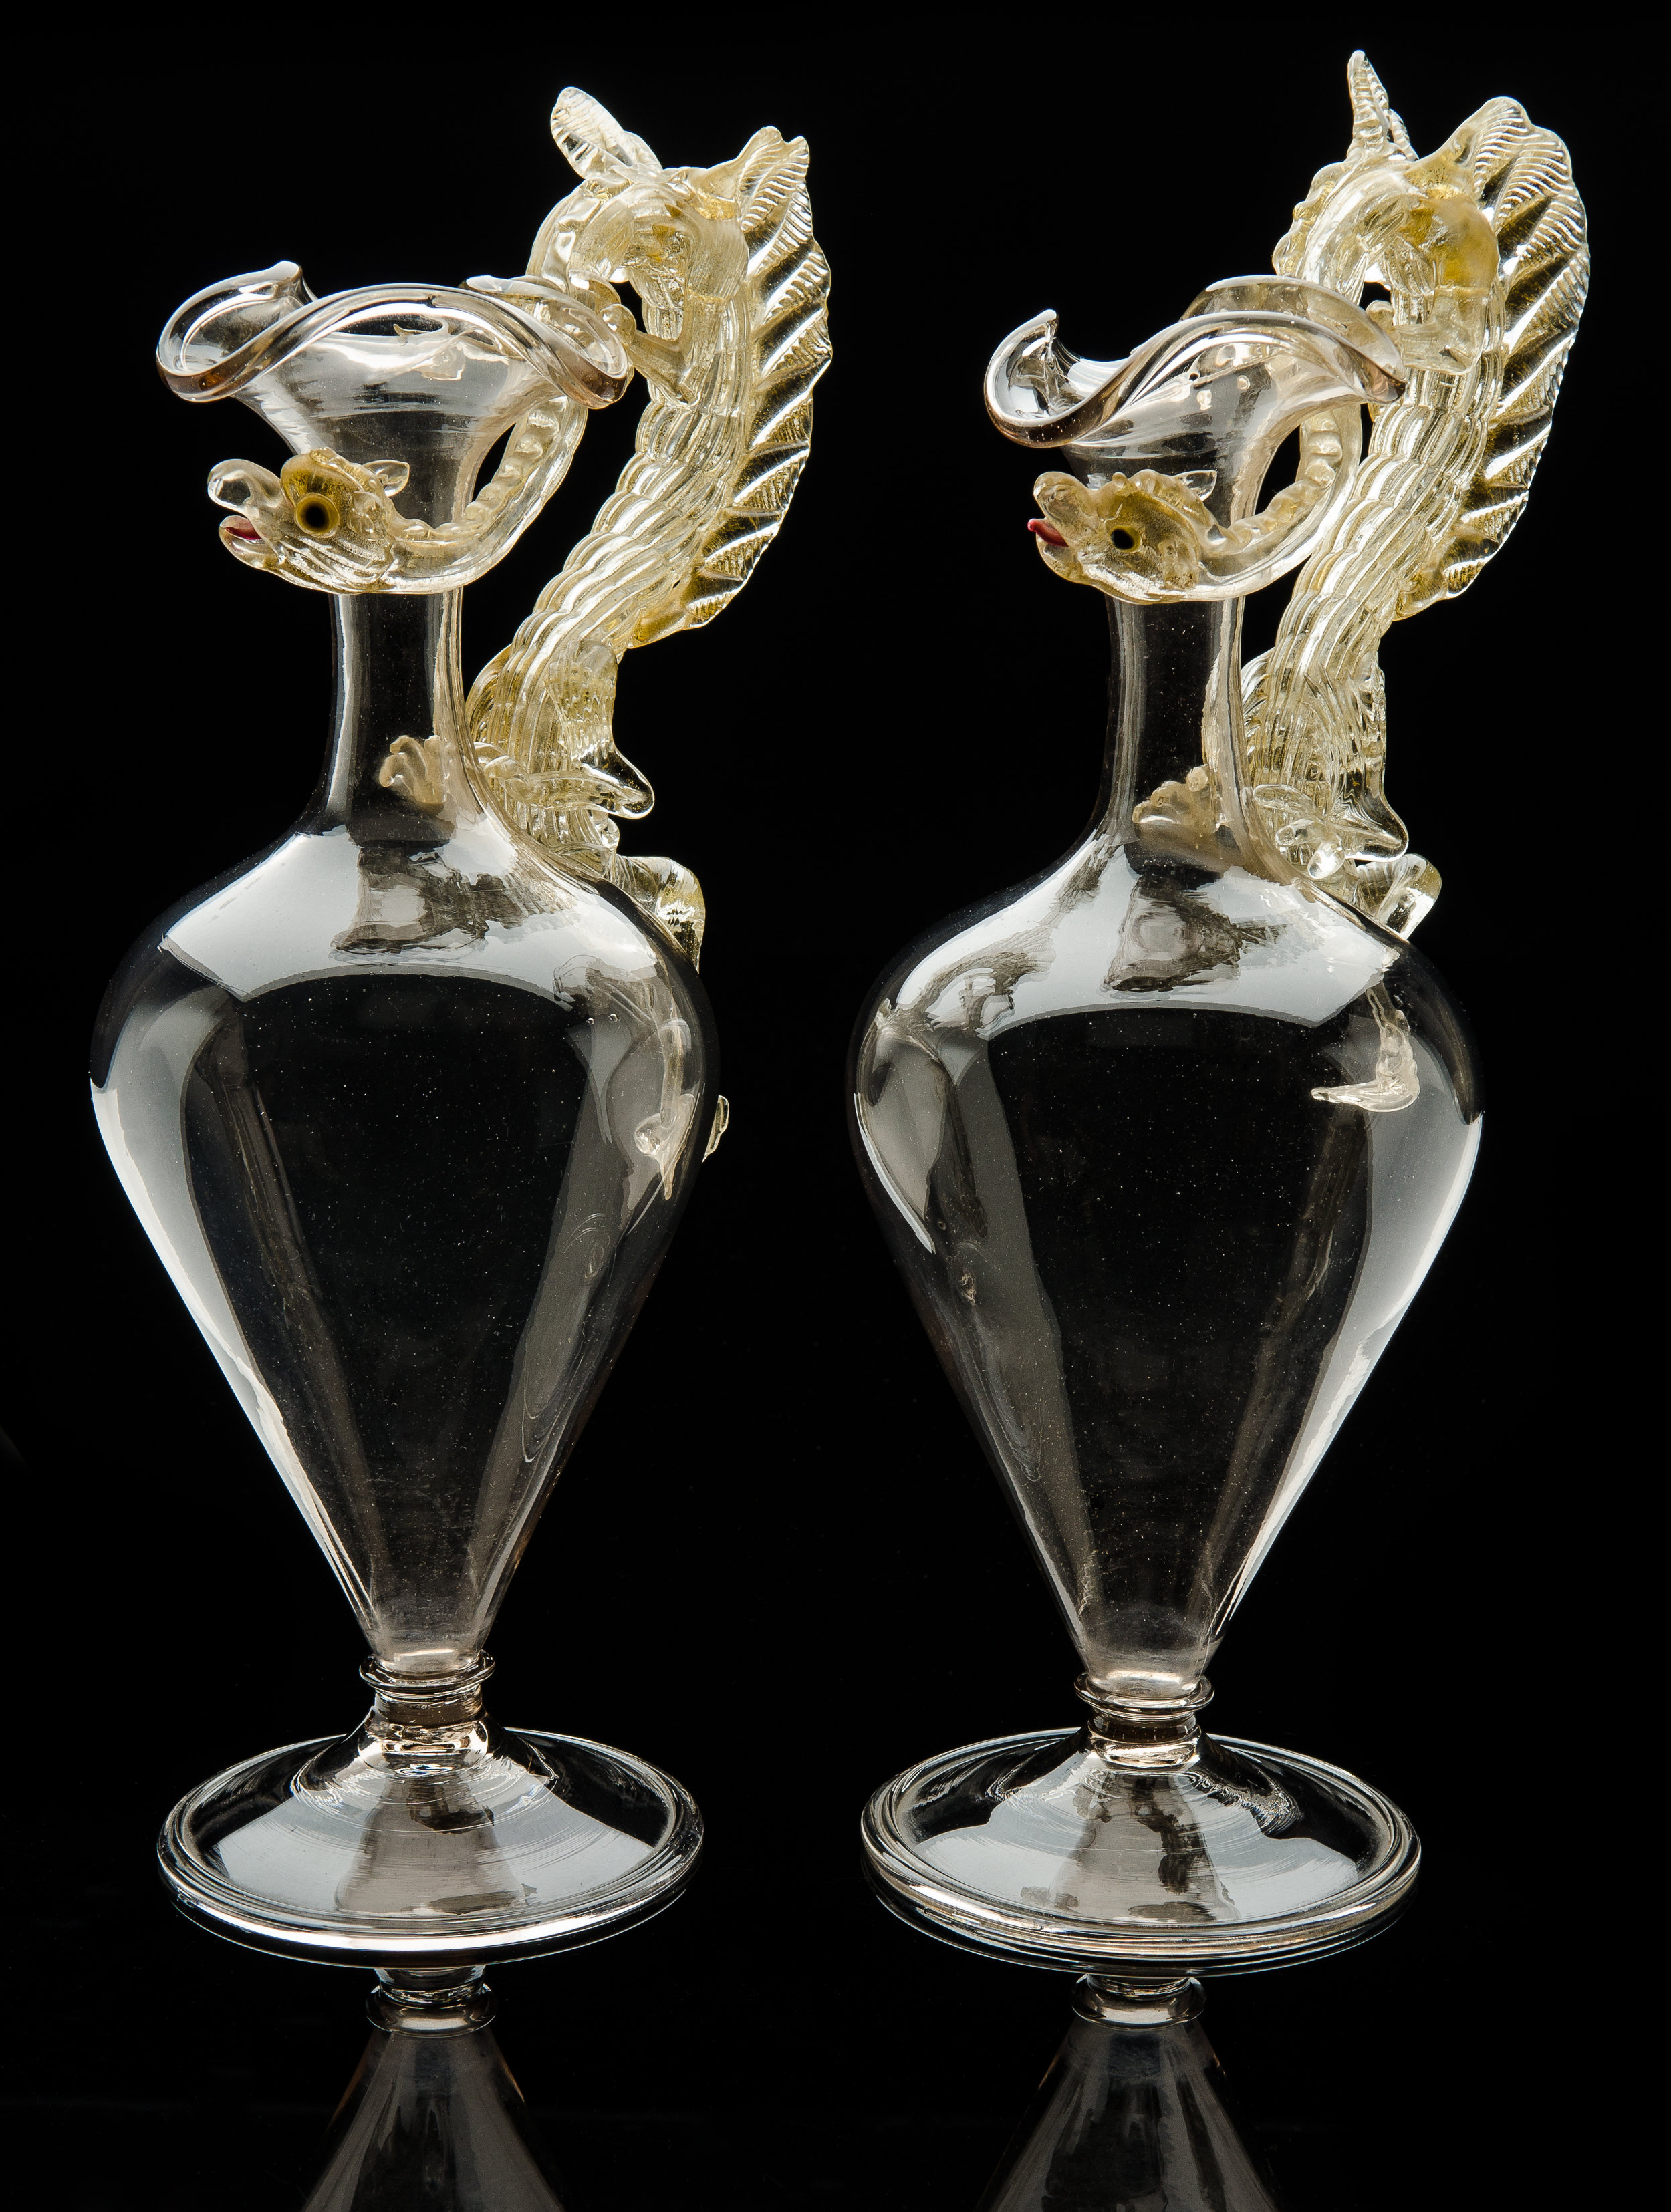 Salviati and Company,  Pair of Dragon Handled Ewers  (1880, glass, 14.75 inches), VV.117